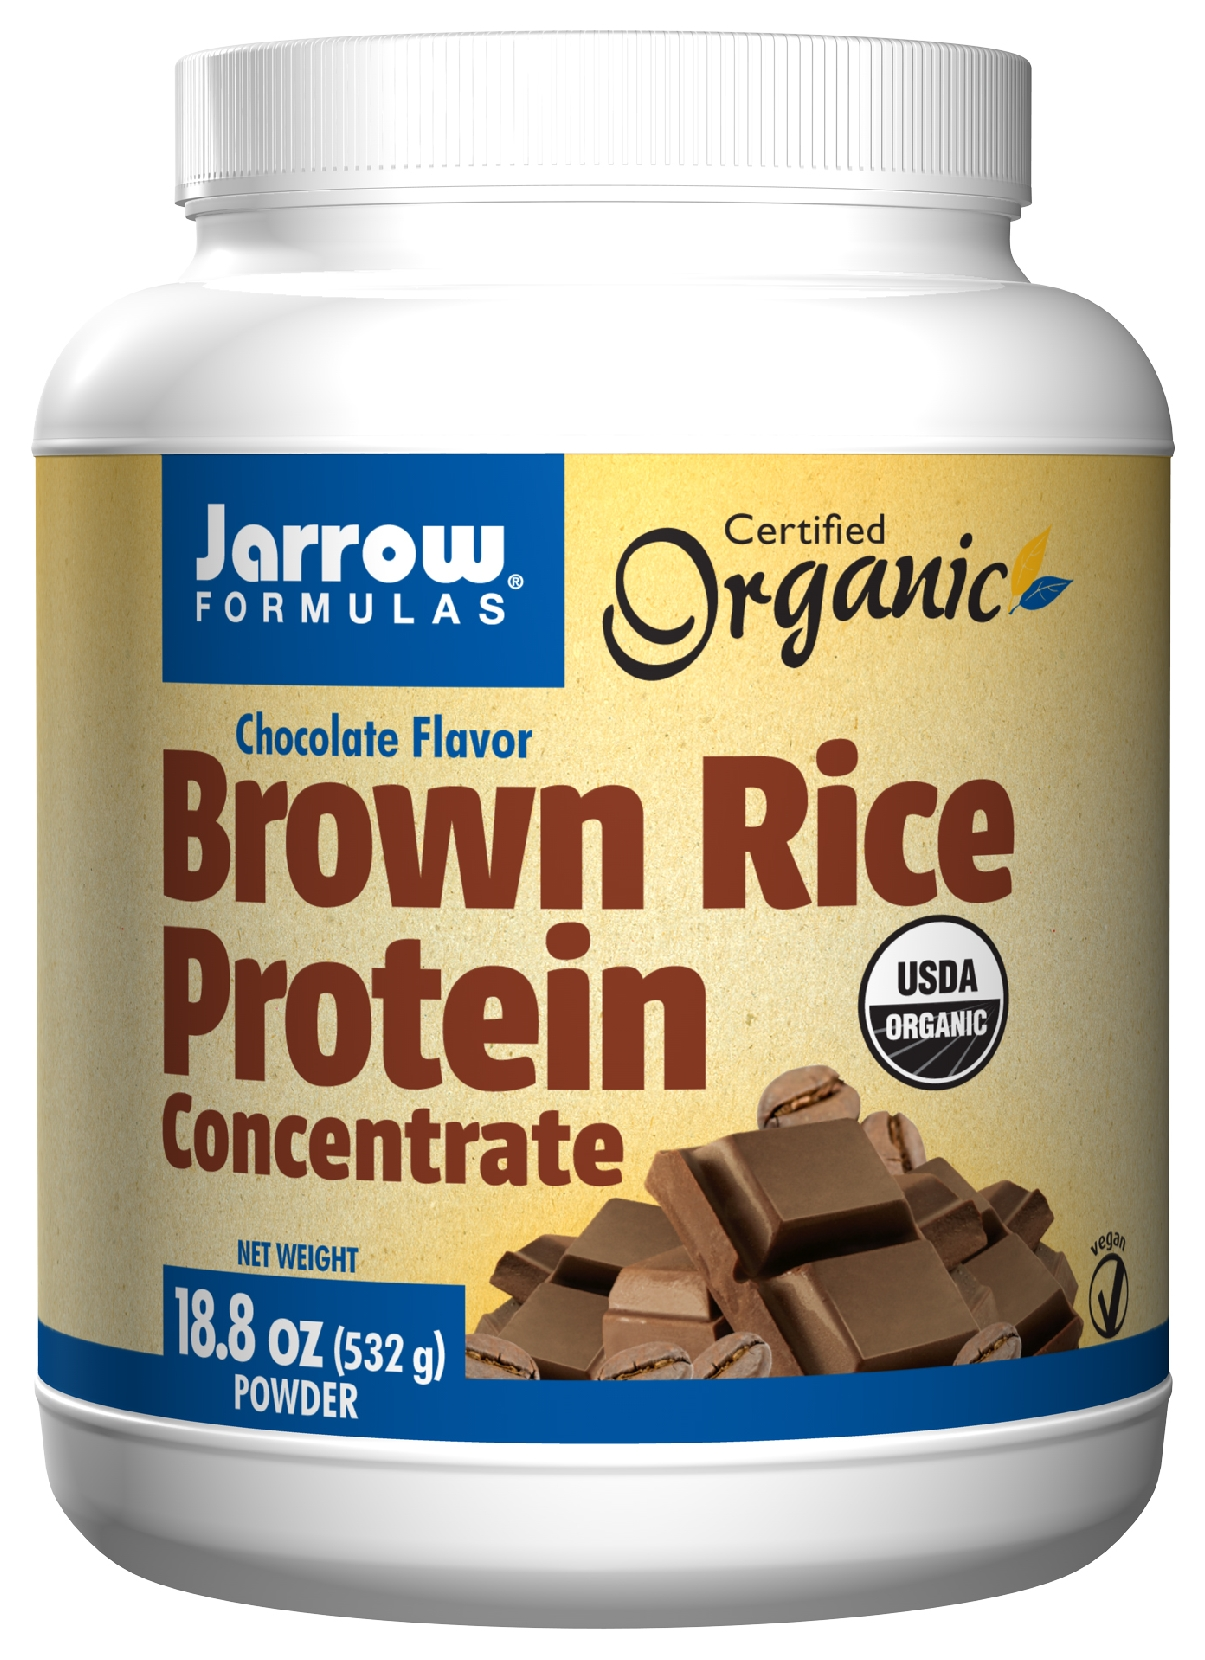 Brown Rice Protein Concentrate Chocolate Flavor 18.8 oz (532 g) by Jarrow Formulas